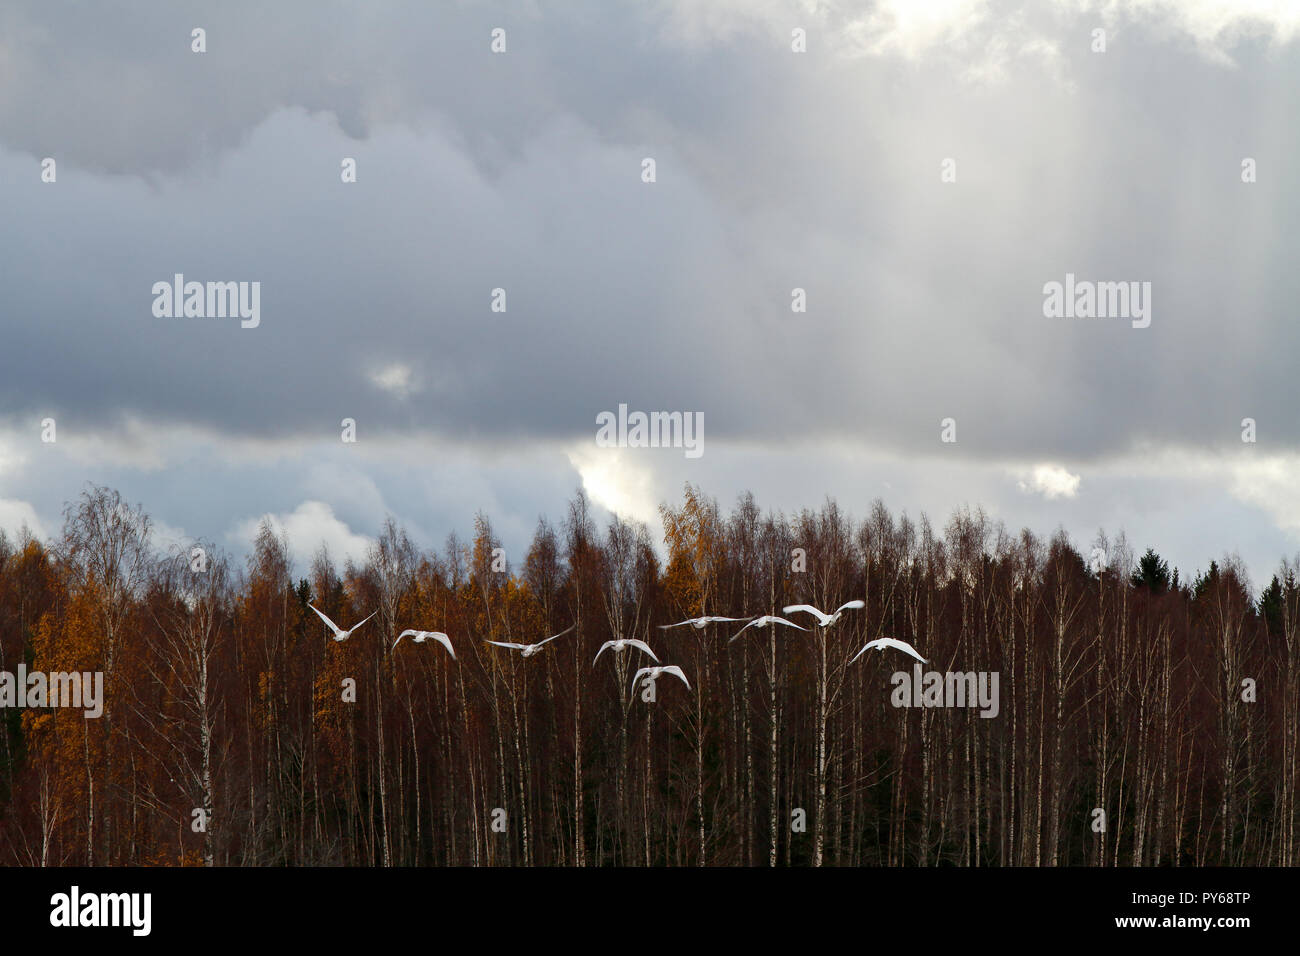 Whooper swans taking off over the birch forest in Finland - Stock Image